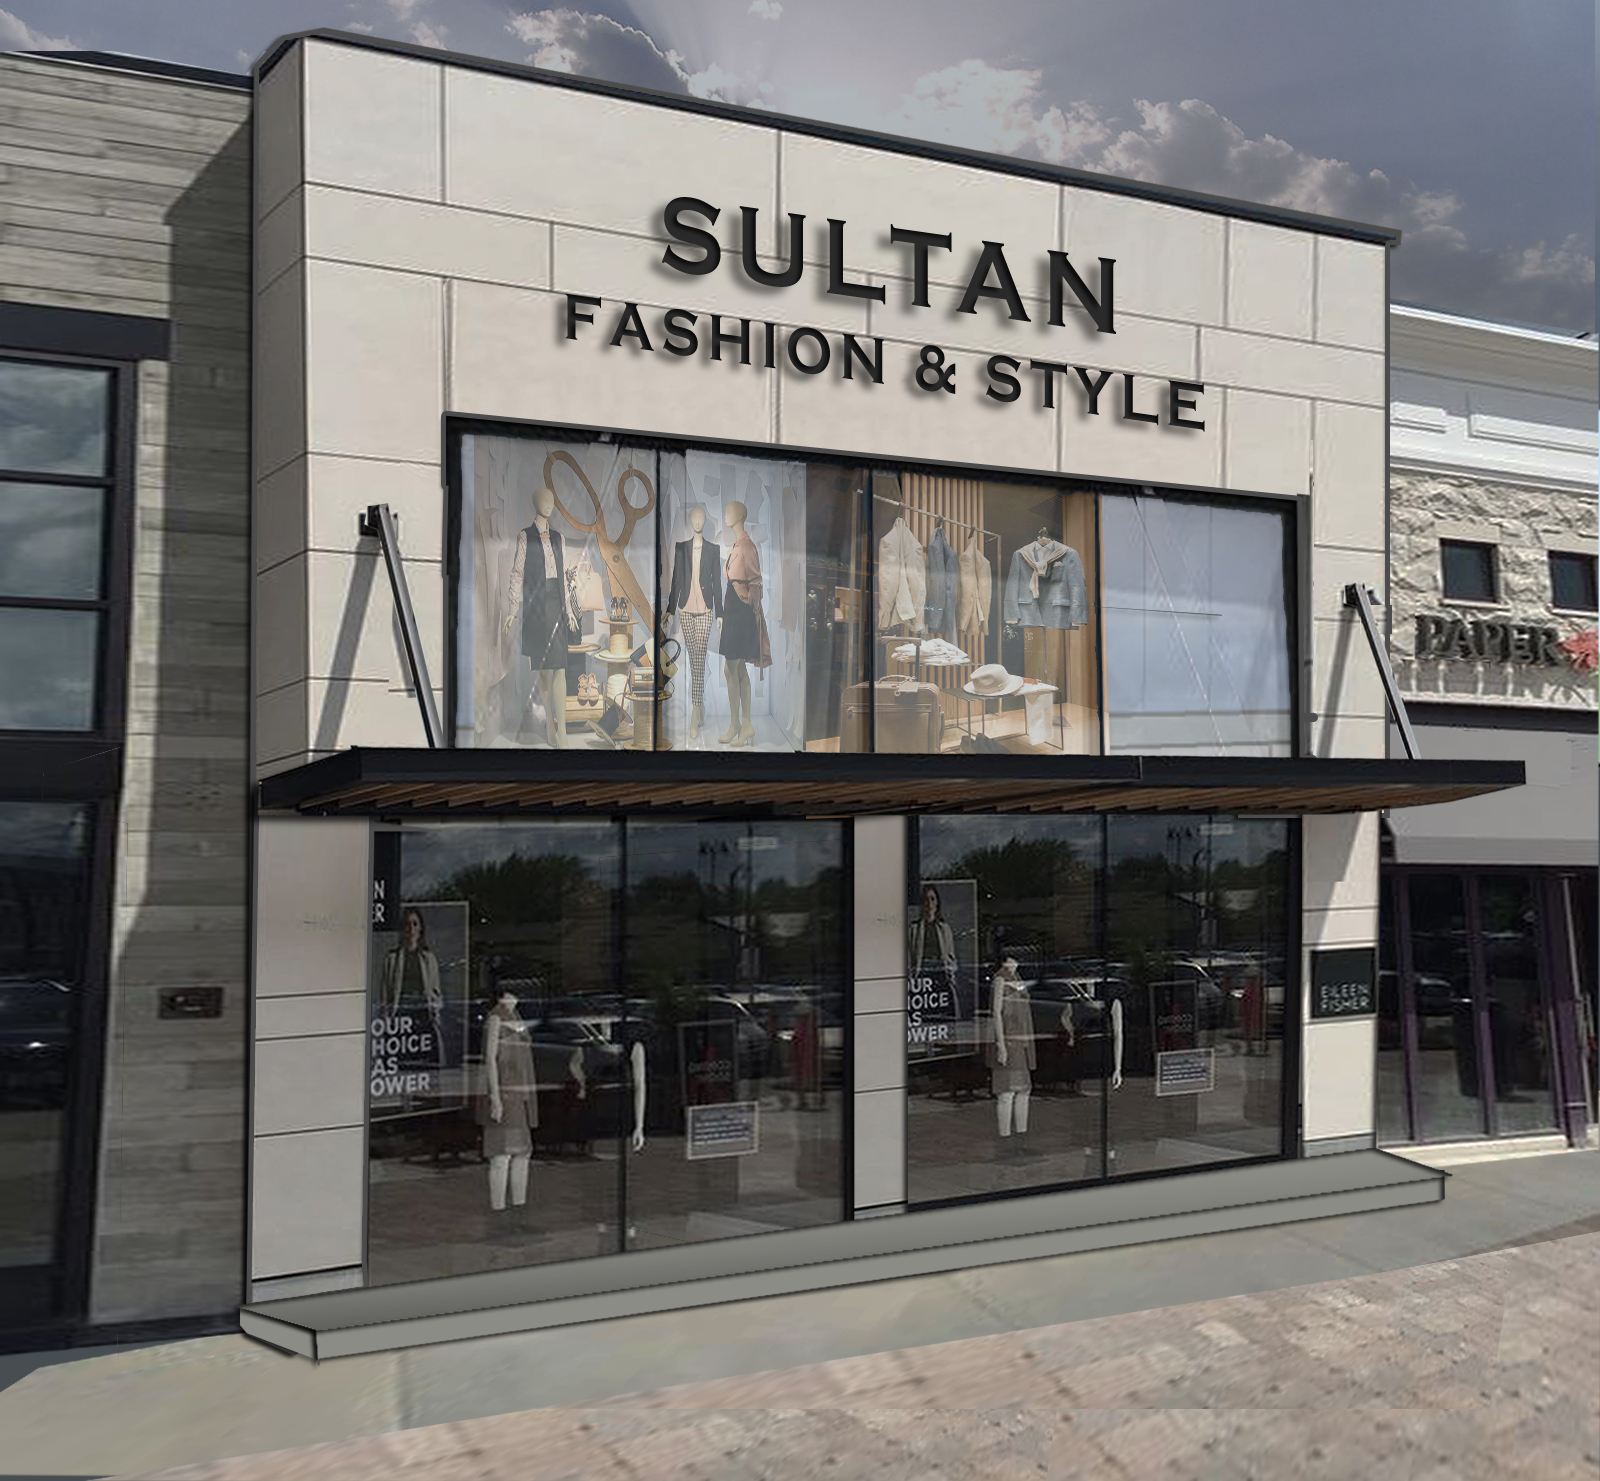 Sultan Fashion & Style